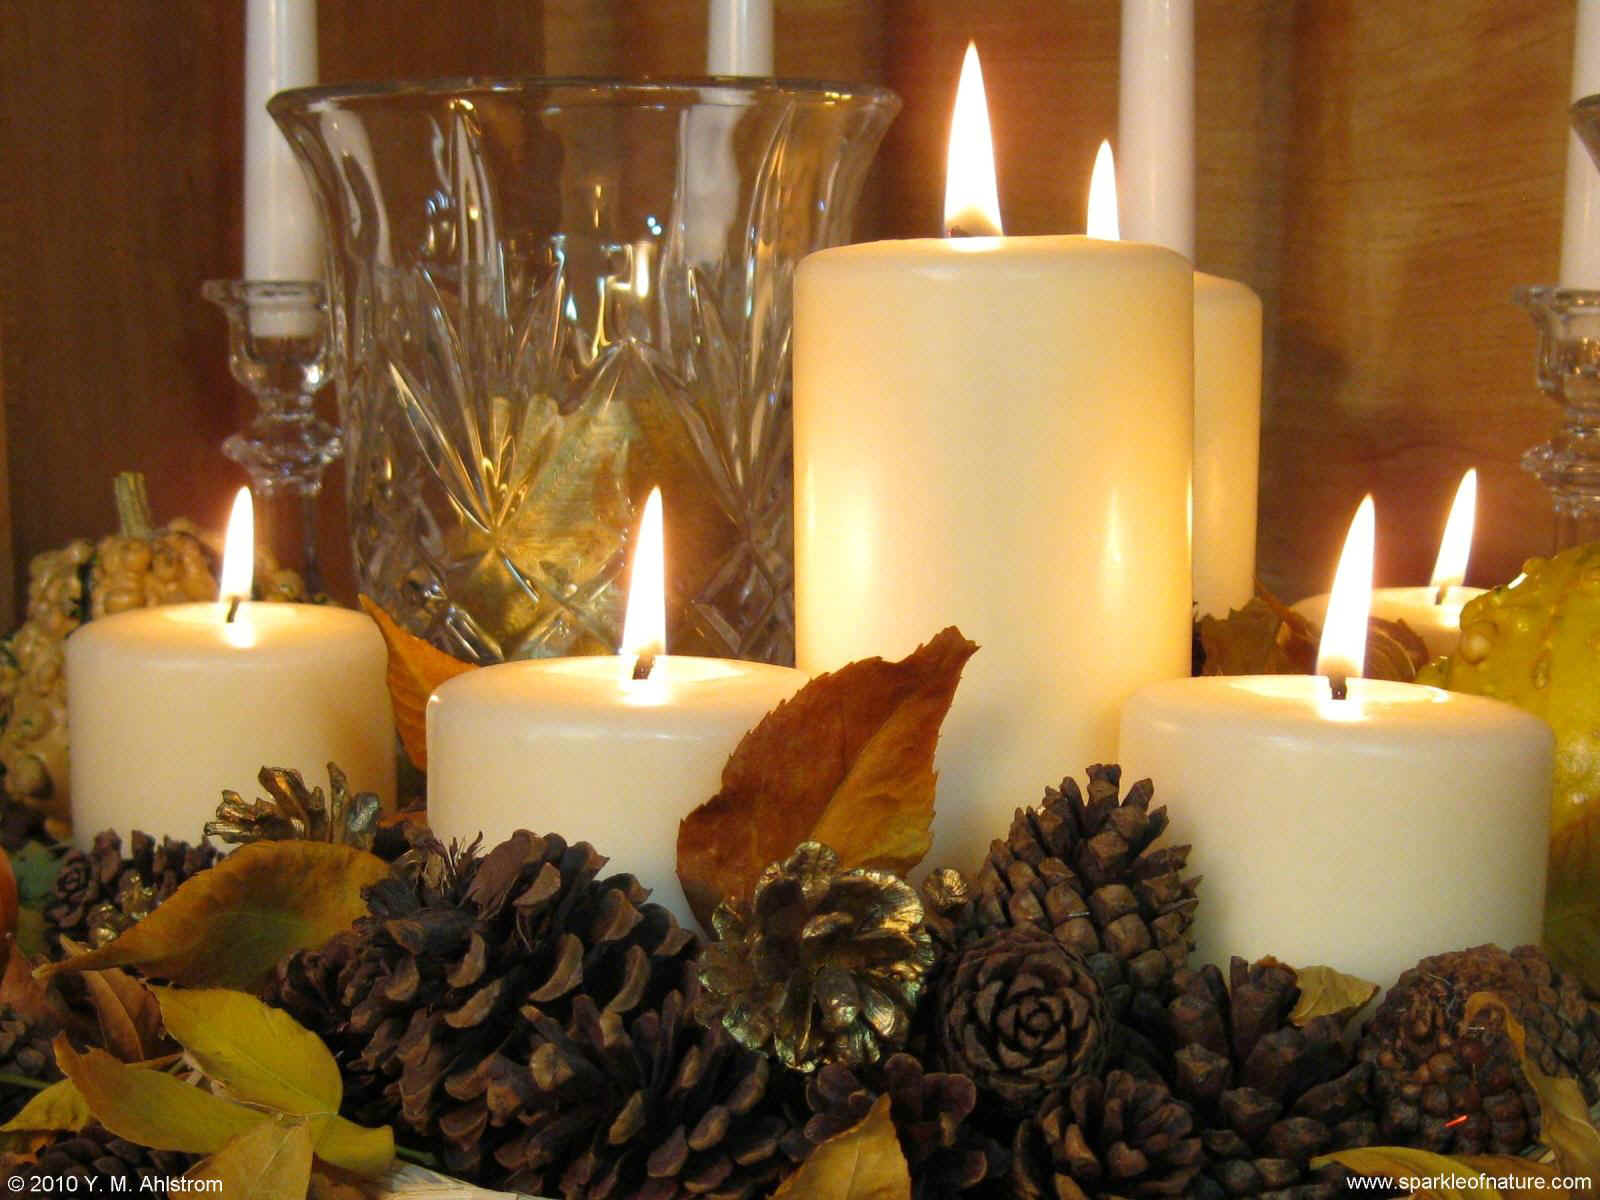 4090 fall candles 1 1600x1200.jpg (227669 bytes)